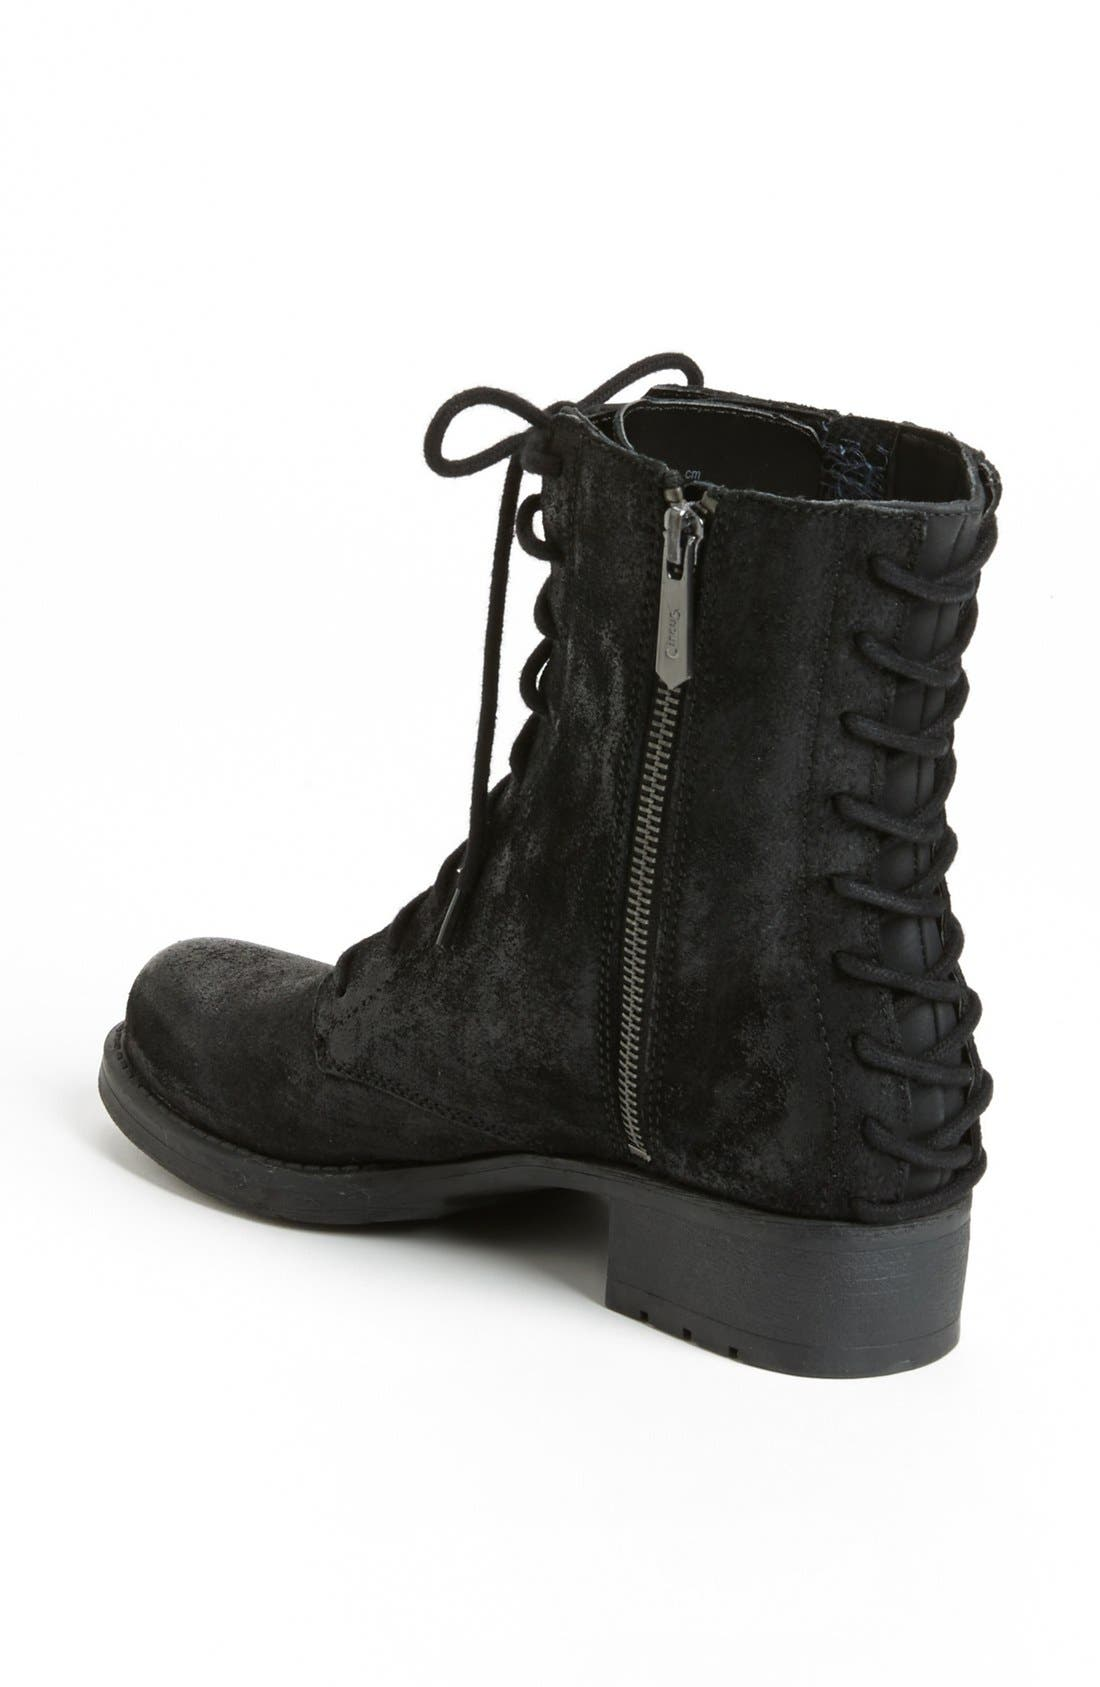 'Griffin' Boot,                             Alternate thumbnail 2, color,                             003